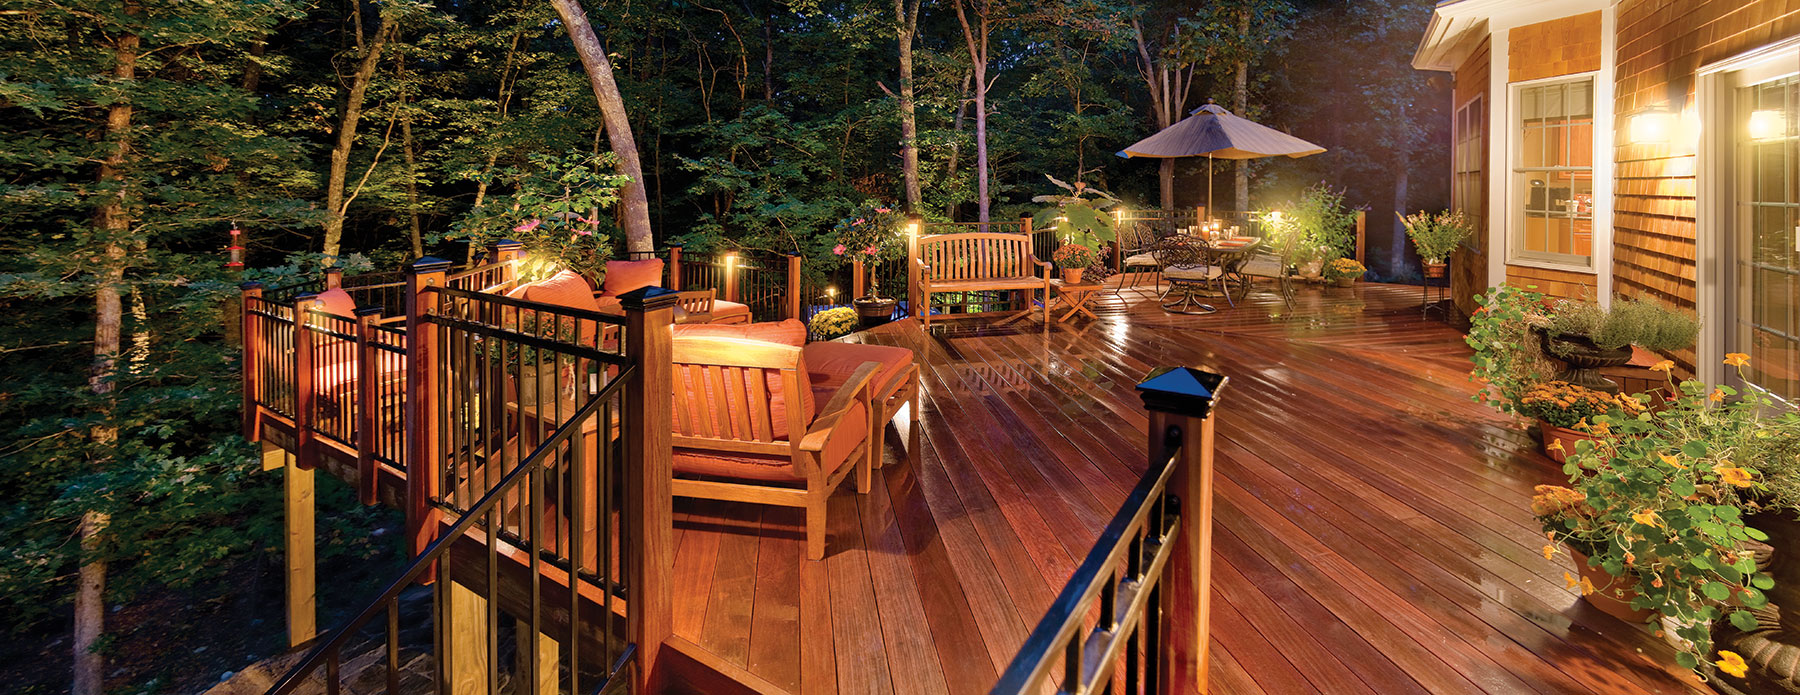 Cordova TN patio lighting installer